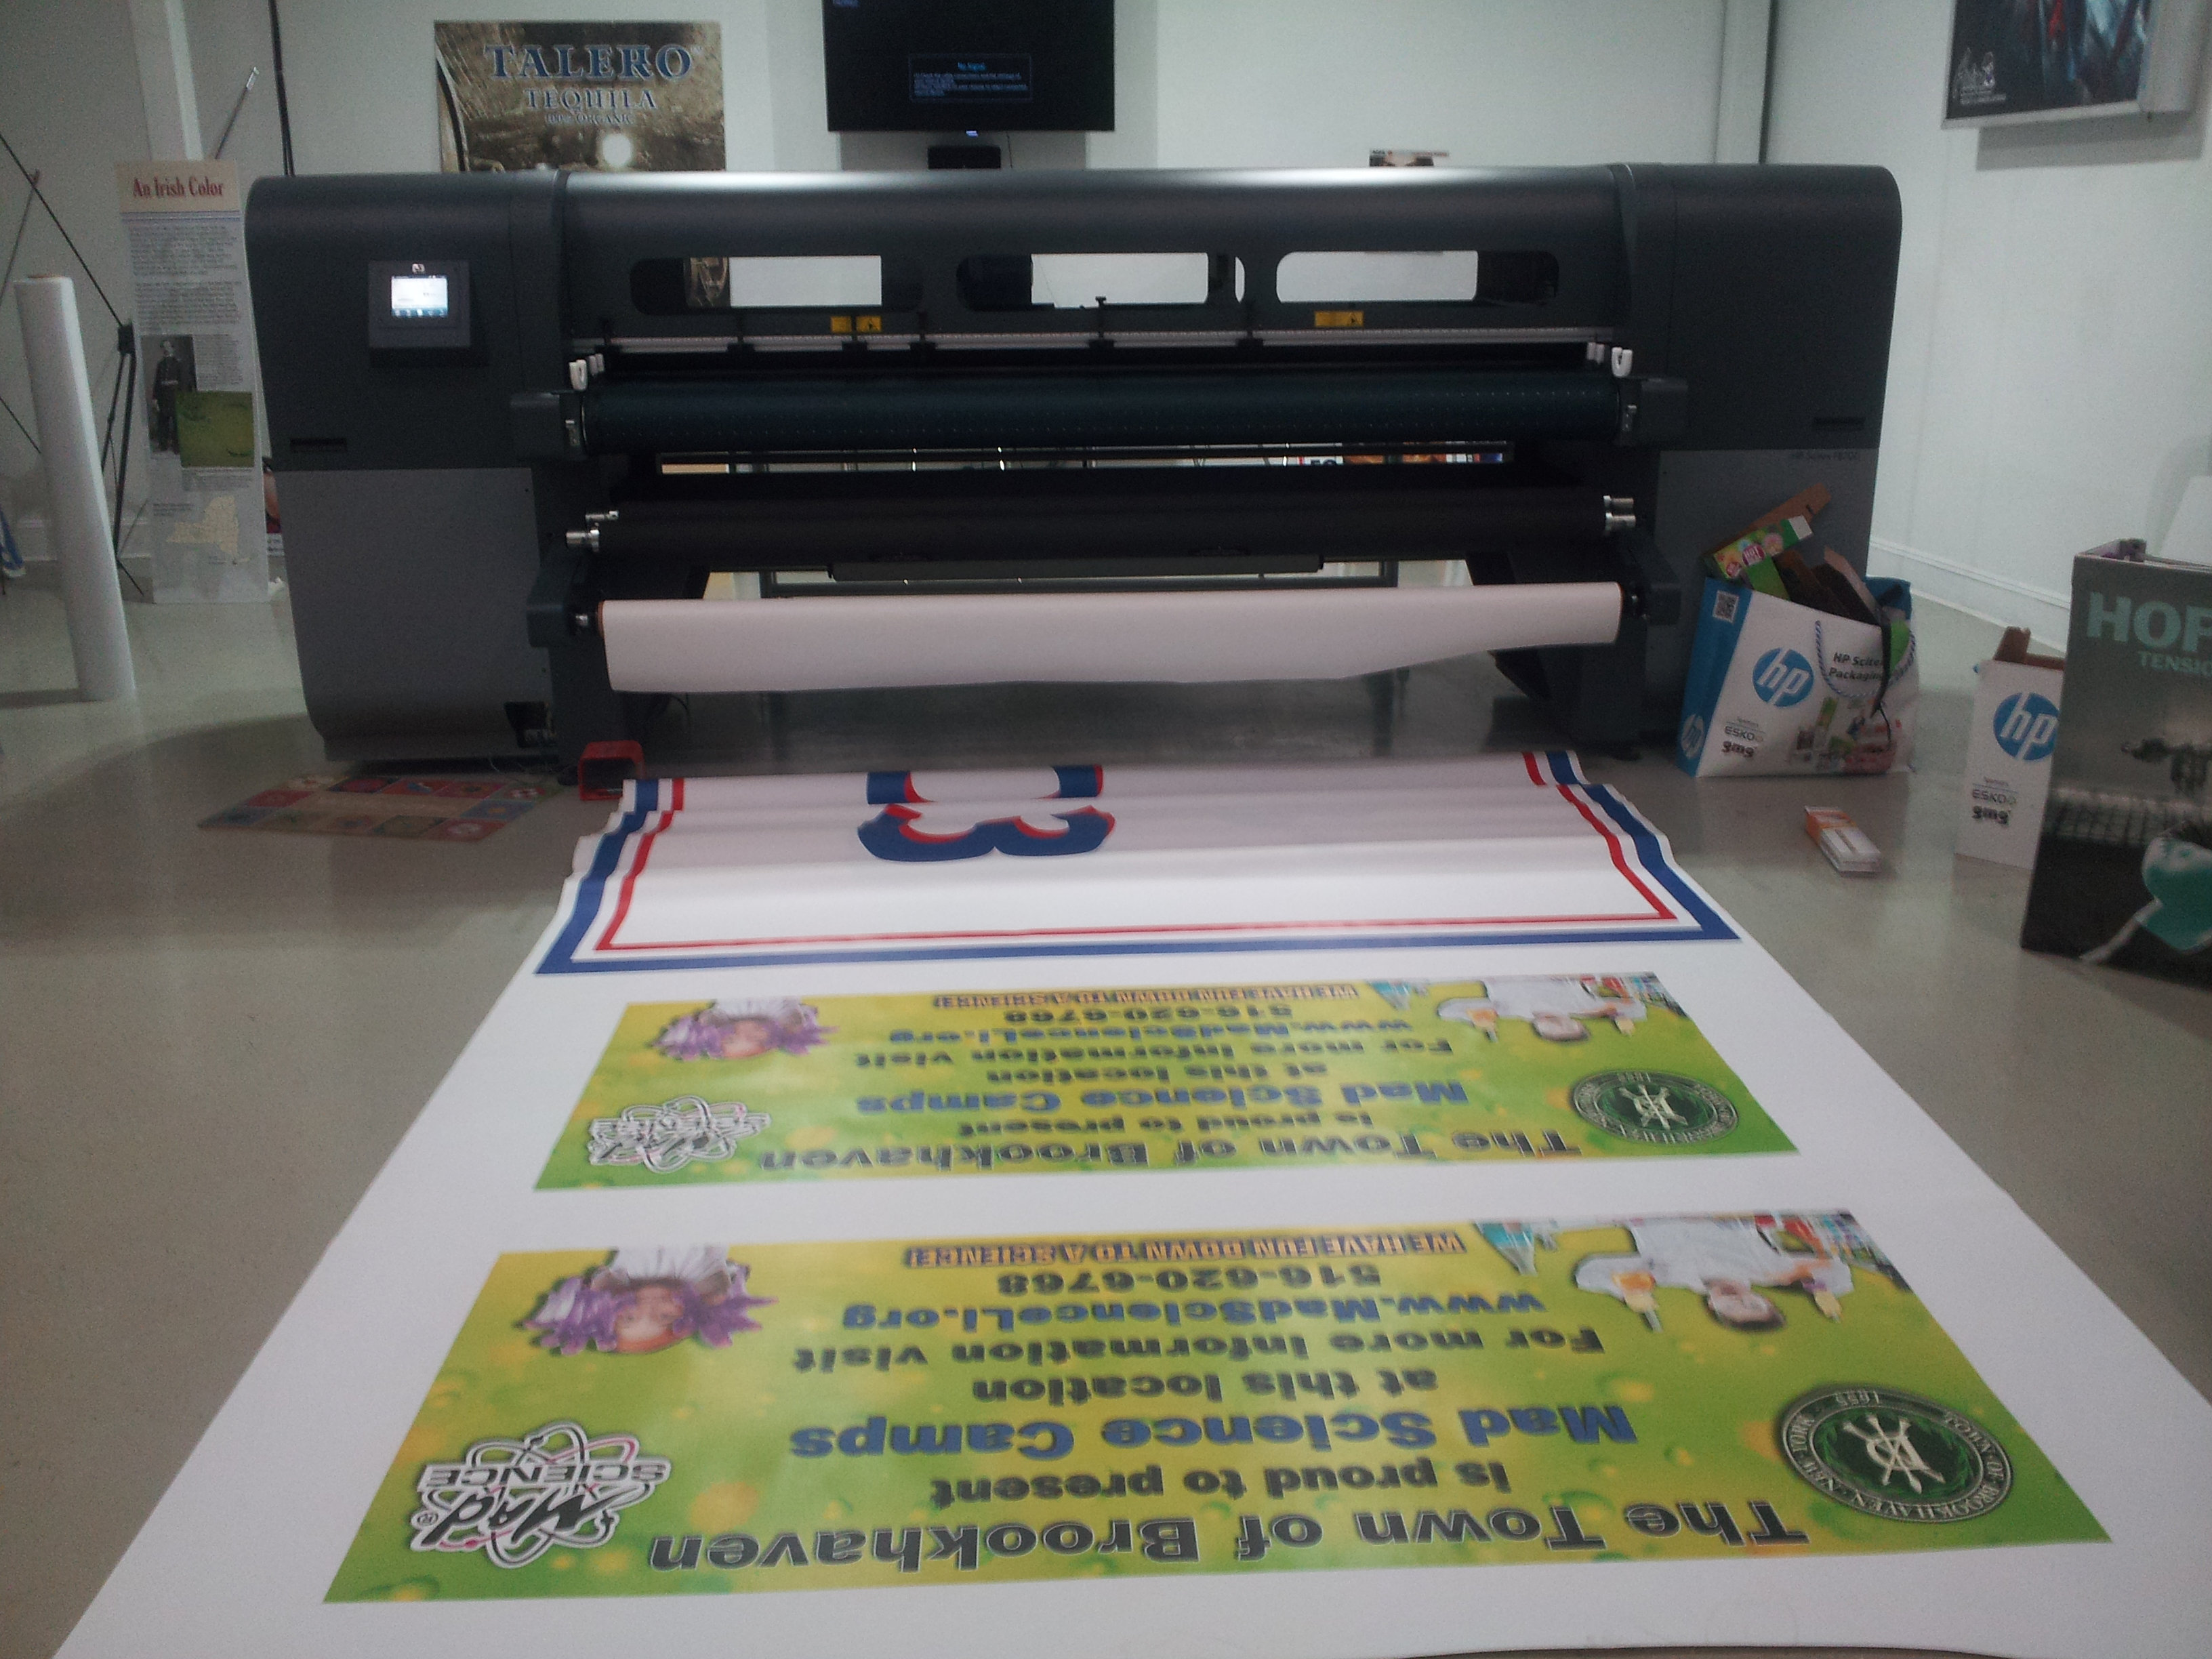 Full color printing company - Full Color Printing Company 55